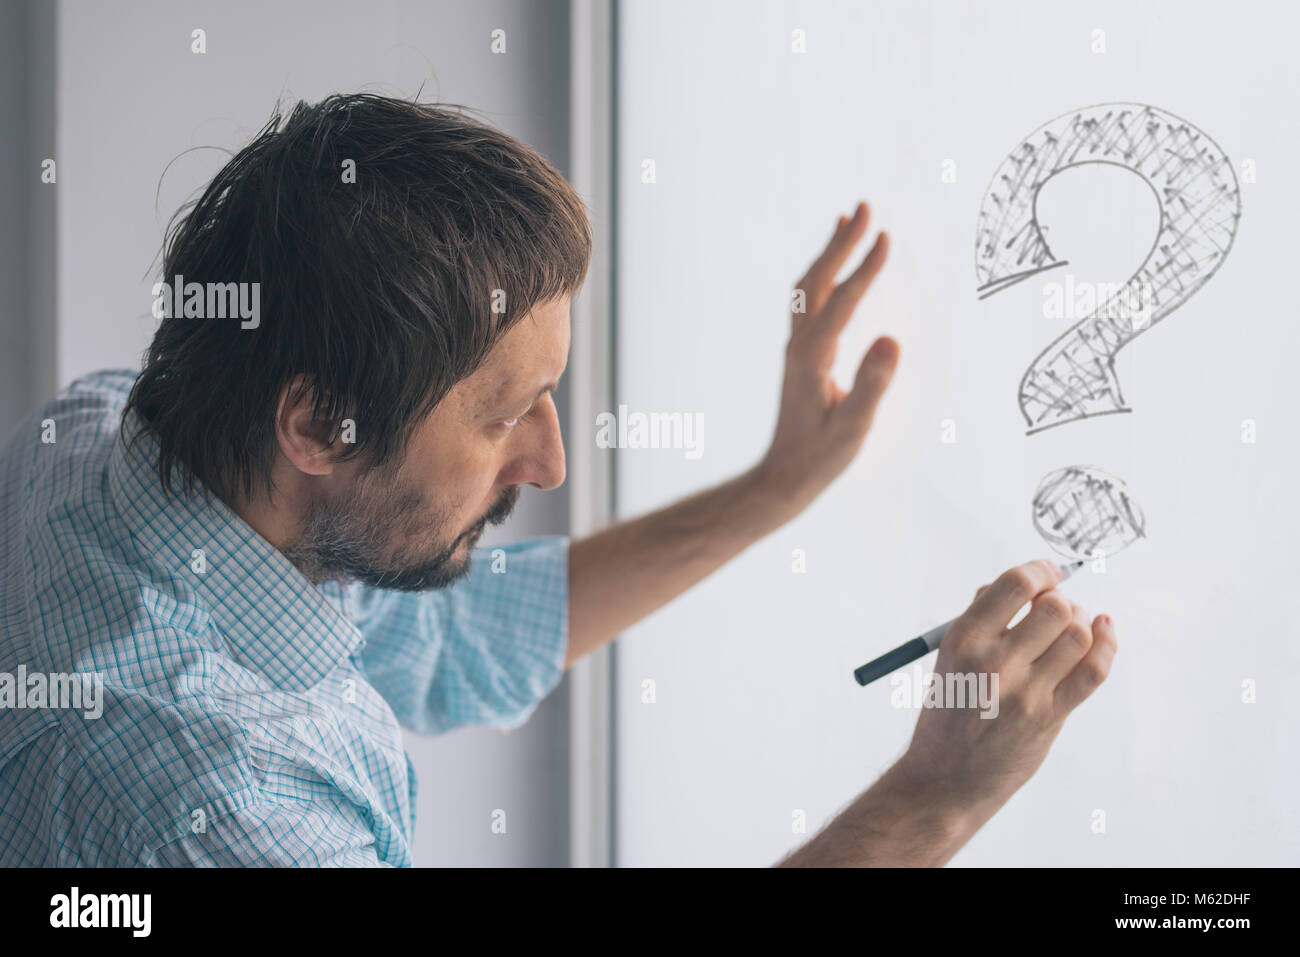 Perplexed businessman drawing question marks on whiteboard in the office, selective focus Stock Photo